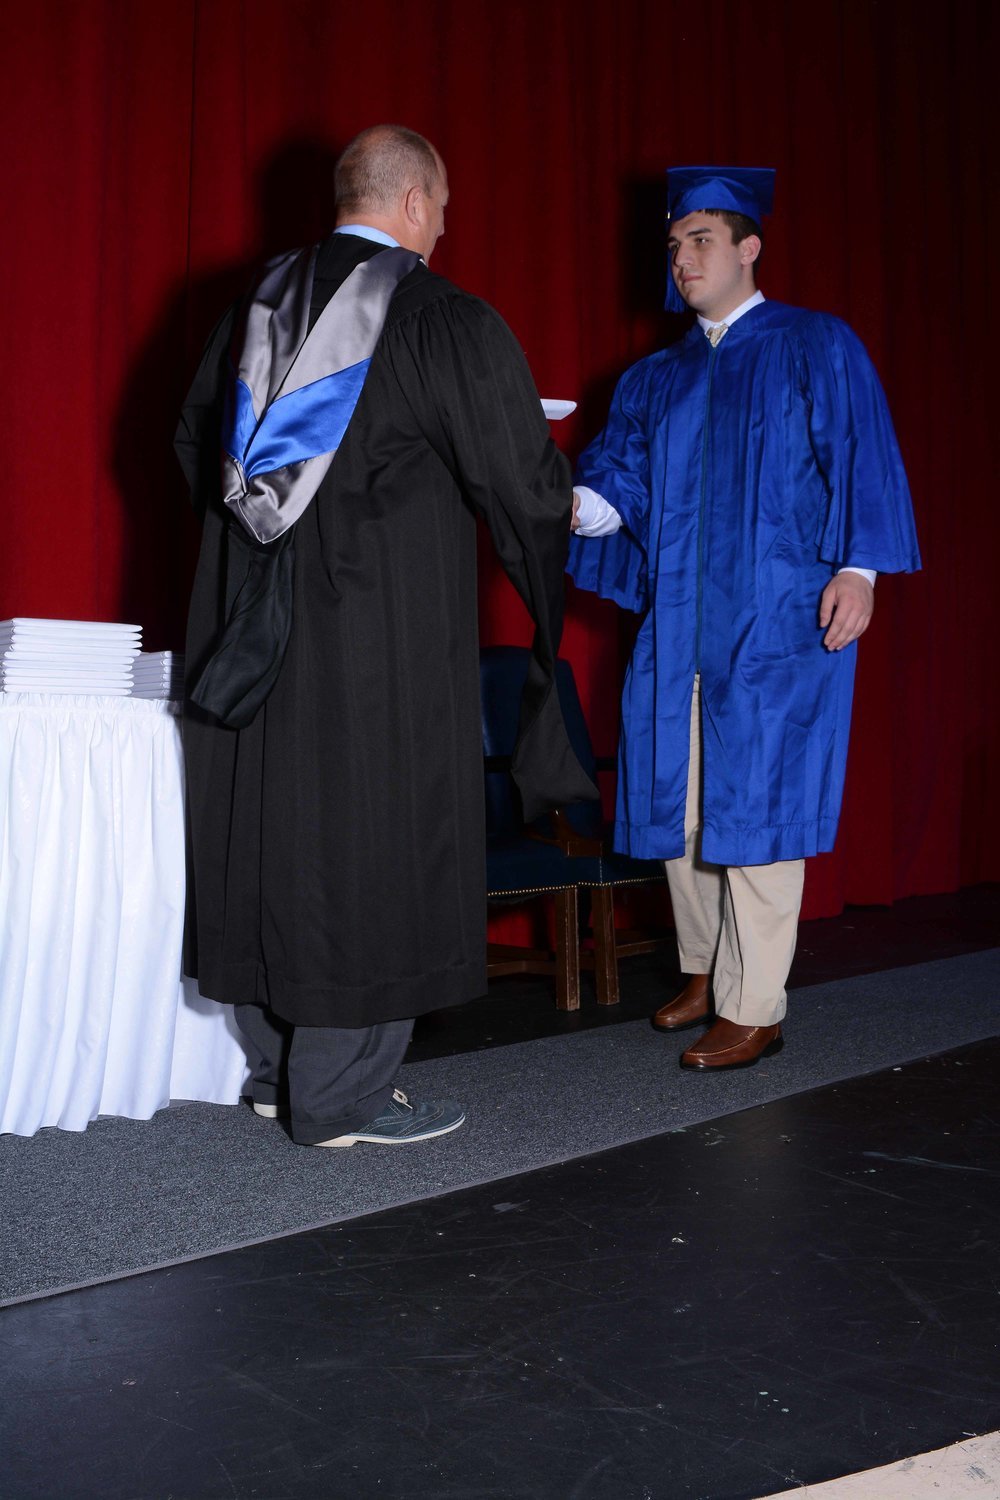 May14 Commencement124.jpg